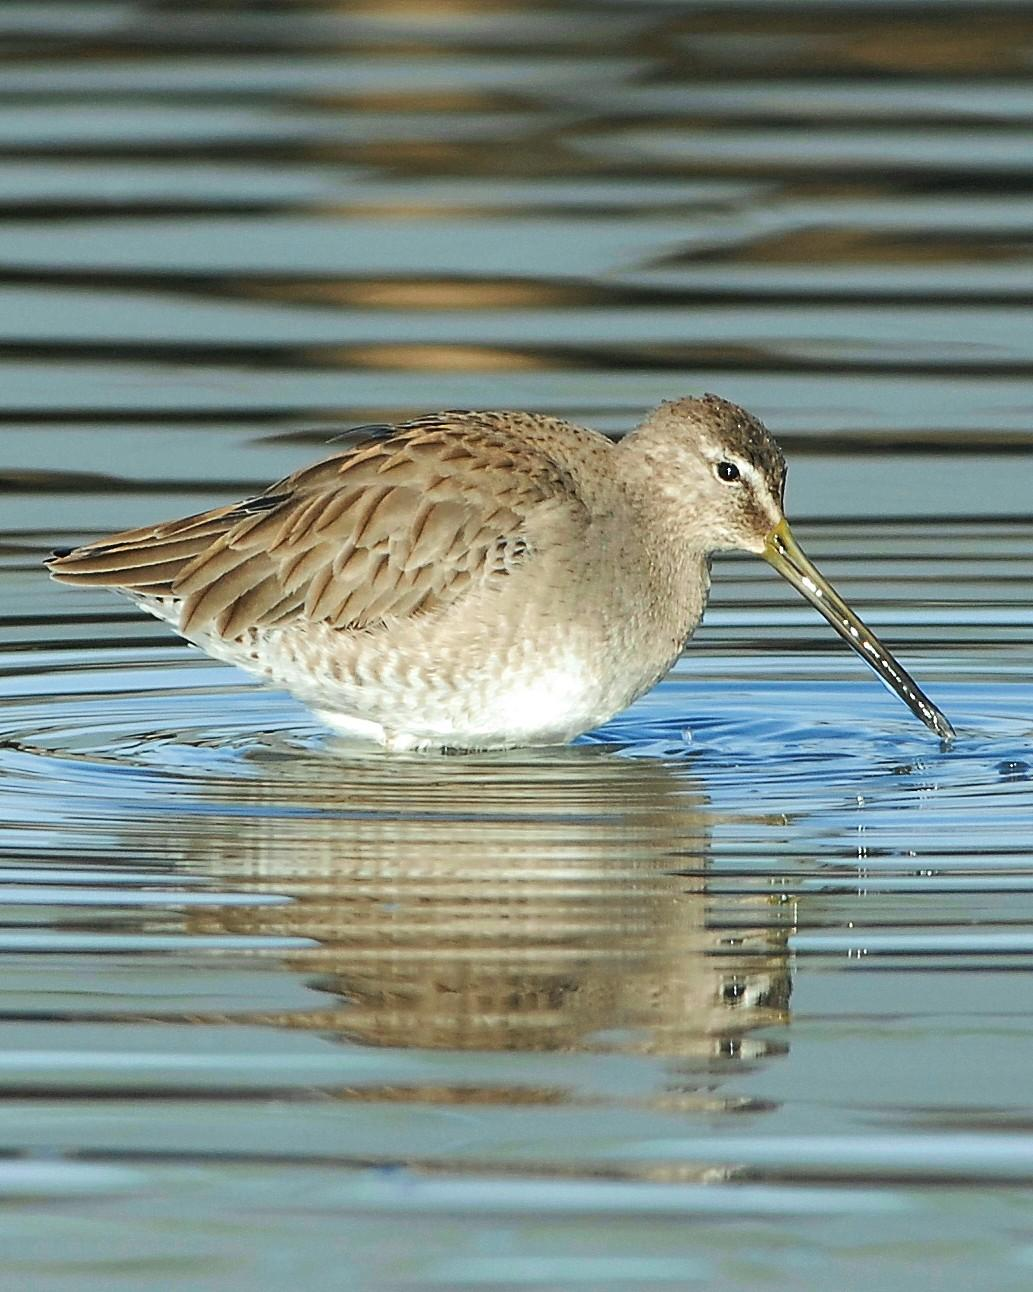 Long-billed Dowitcher Photo by David Hollie